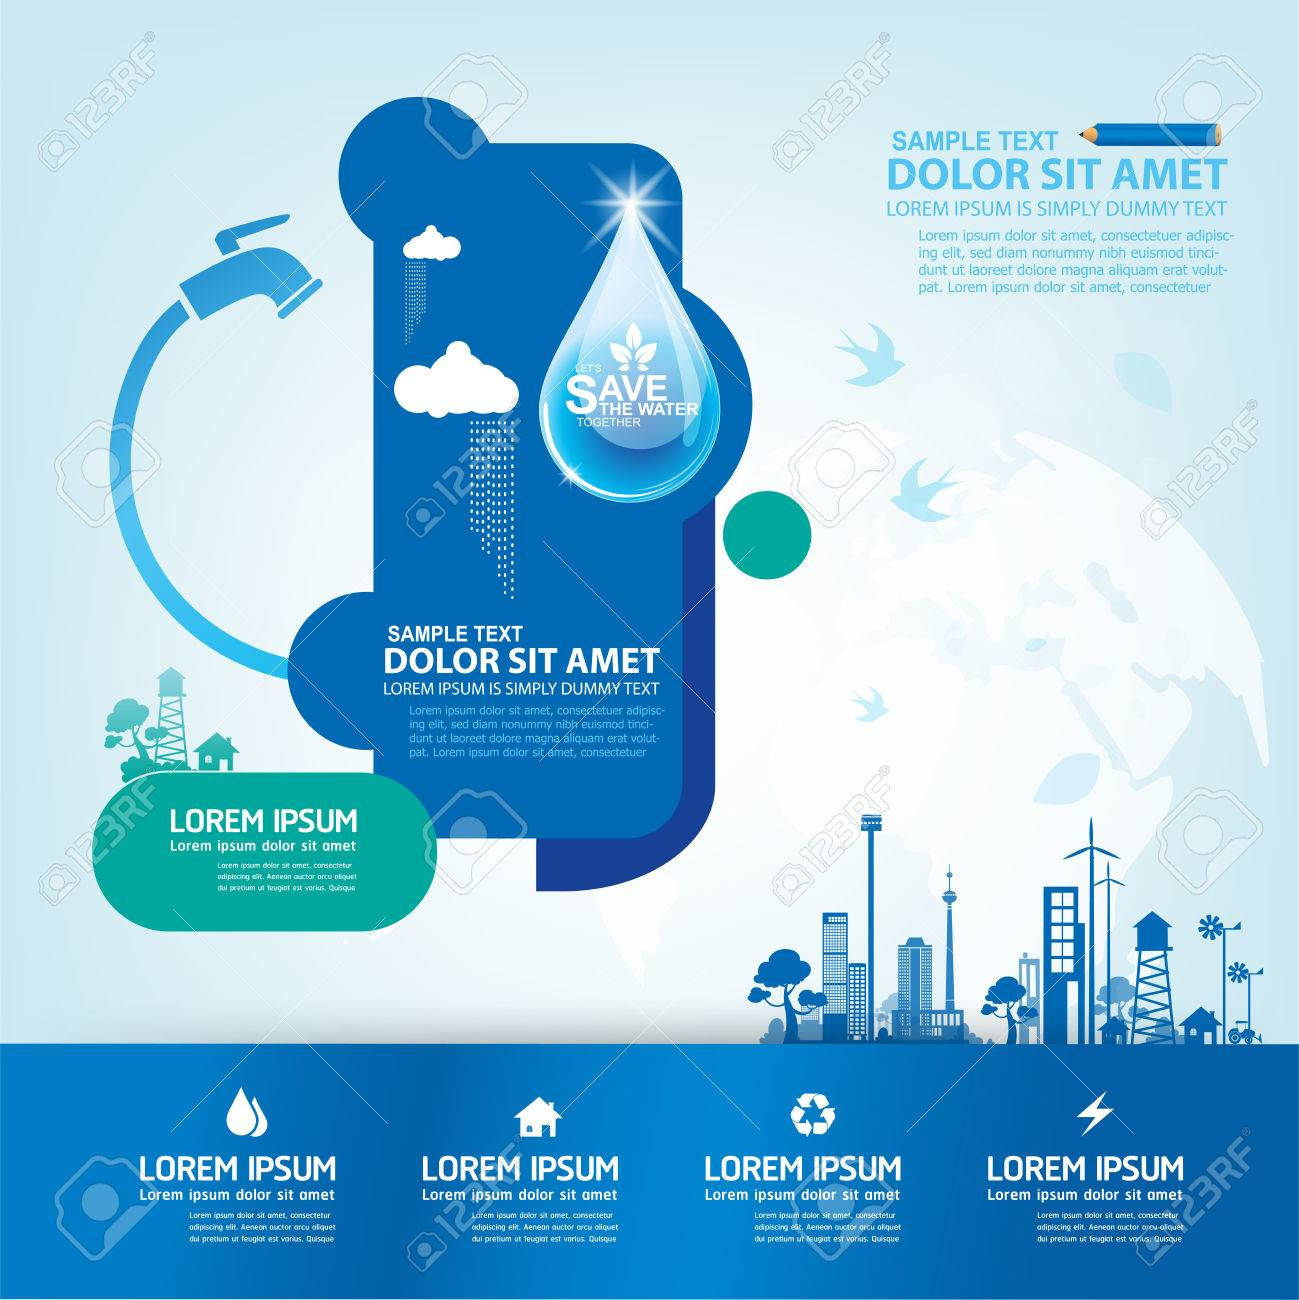 Creative Poster On Save Water Save Life